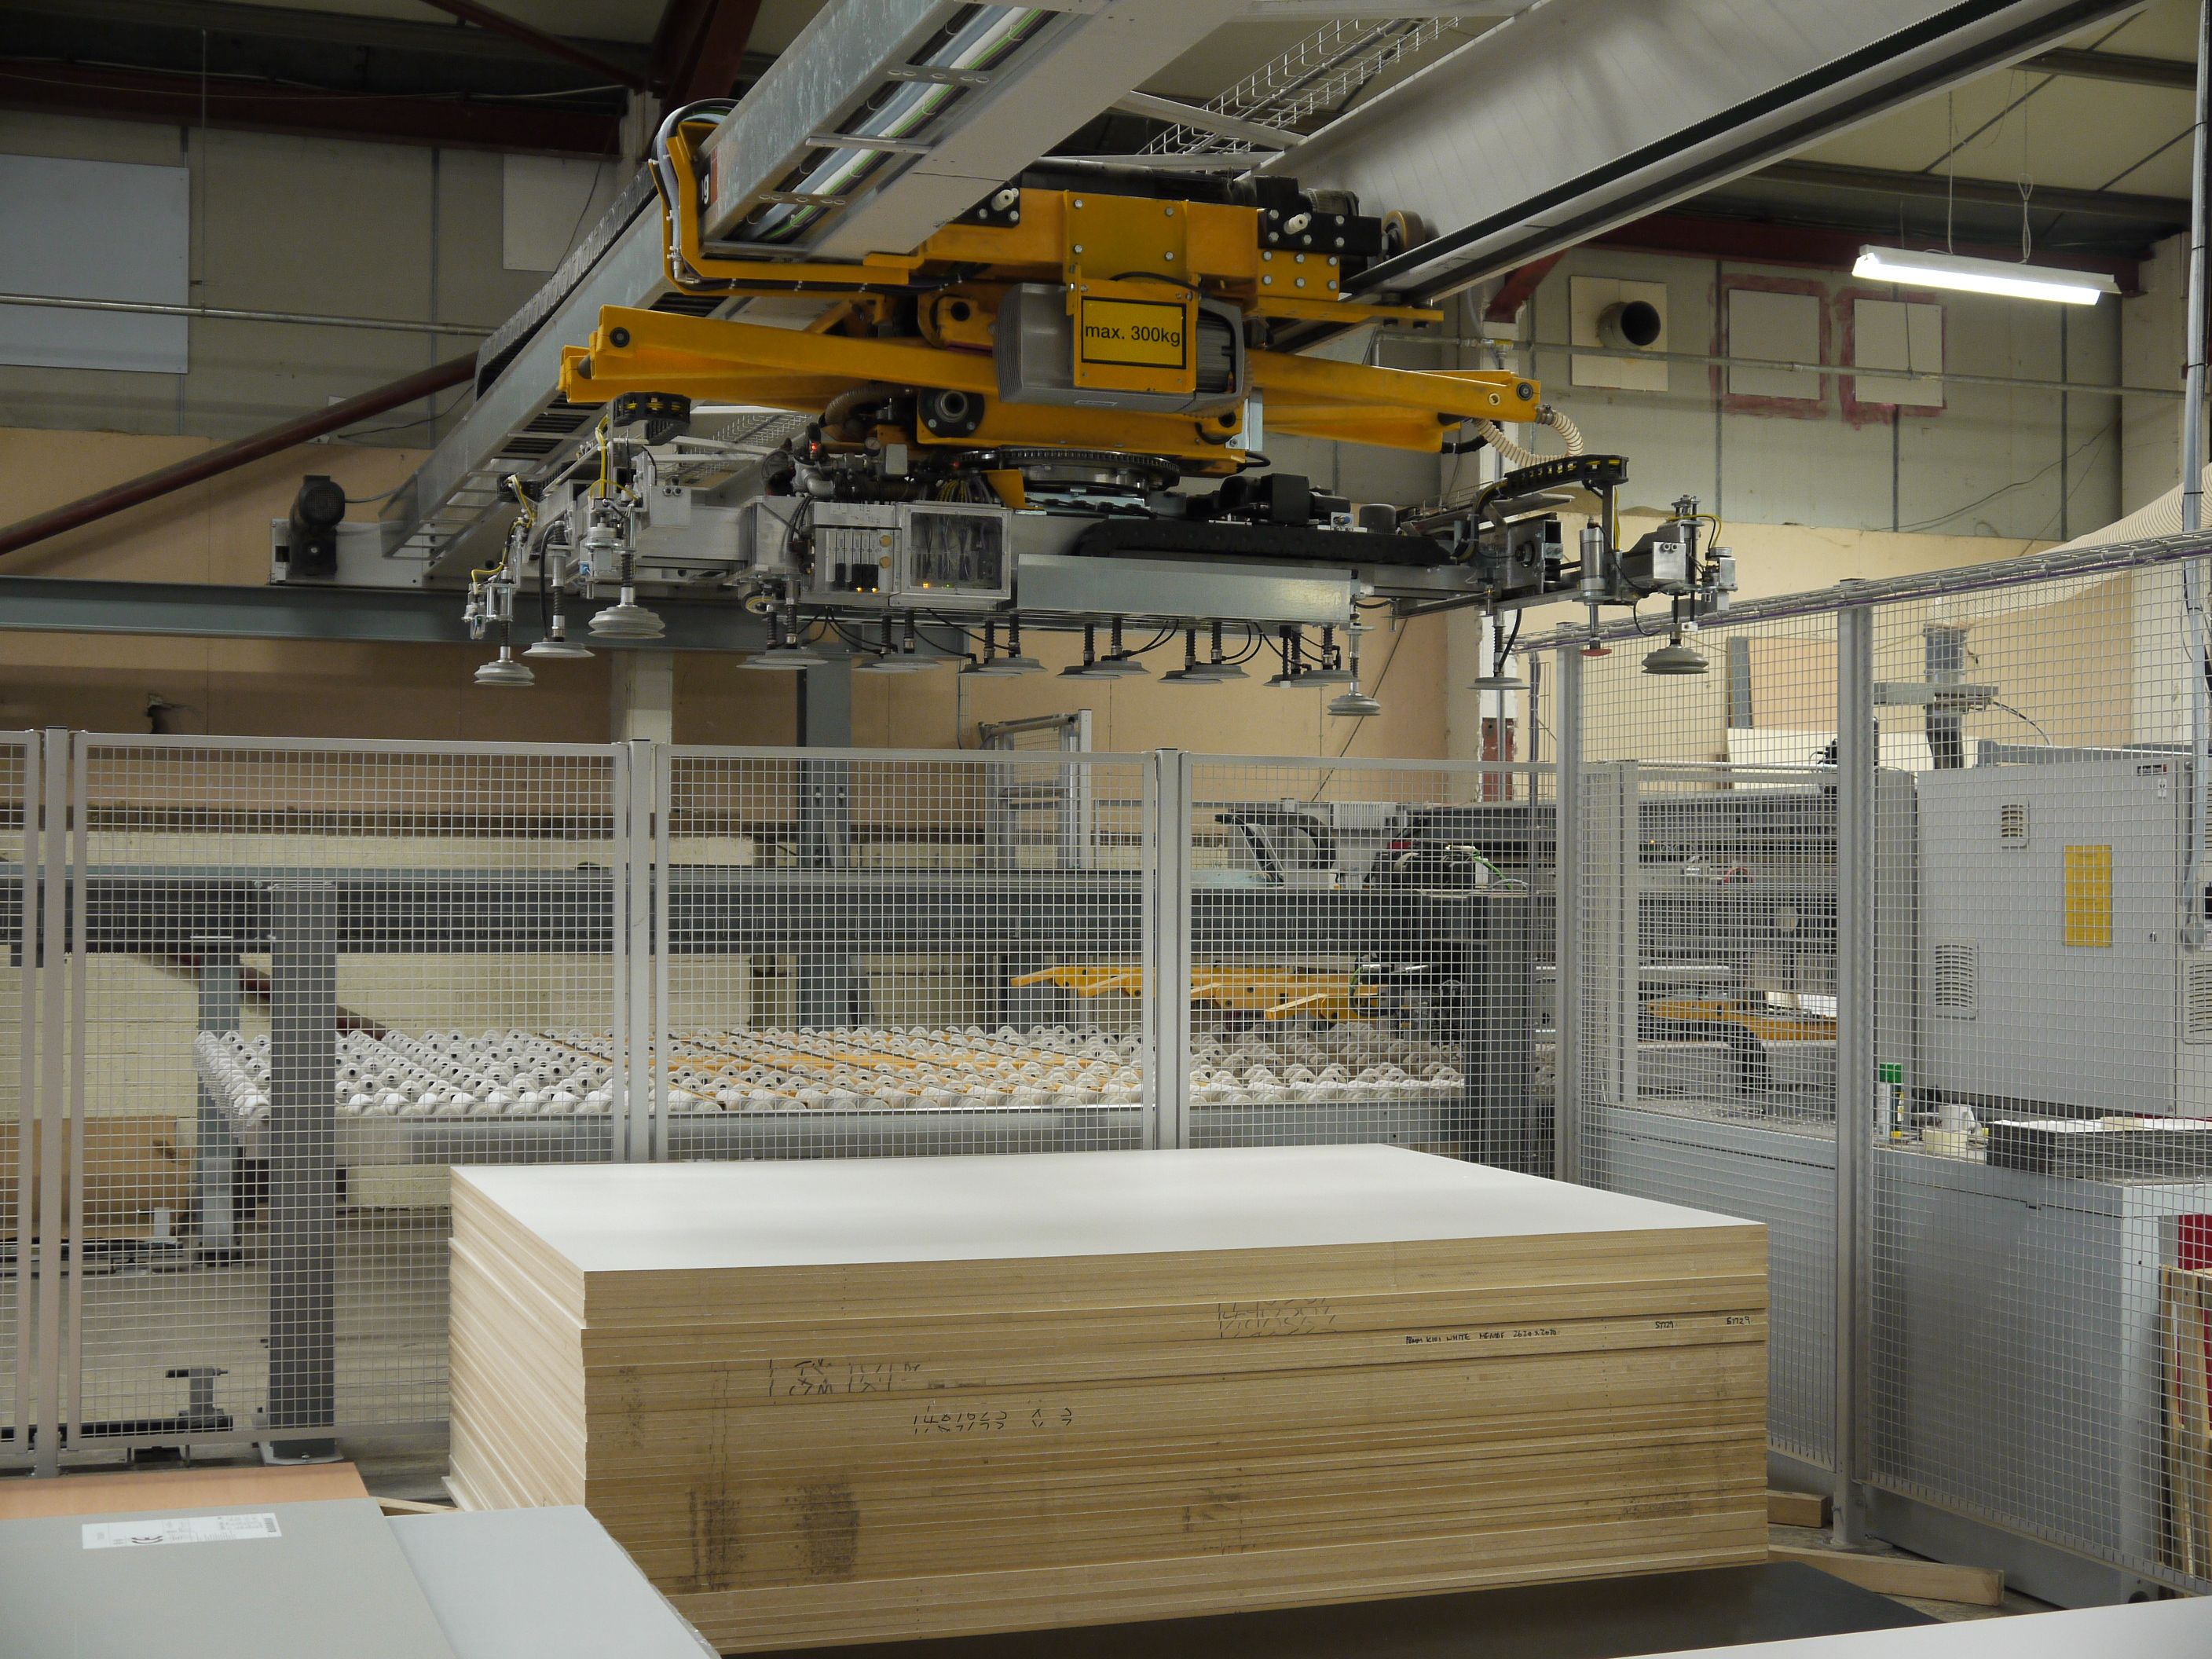 With Chaotic Storage Panels Can Be Stacked In Any Order And Retrieved Without Even Breaking